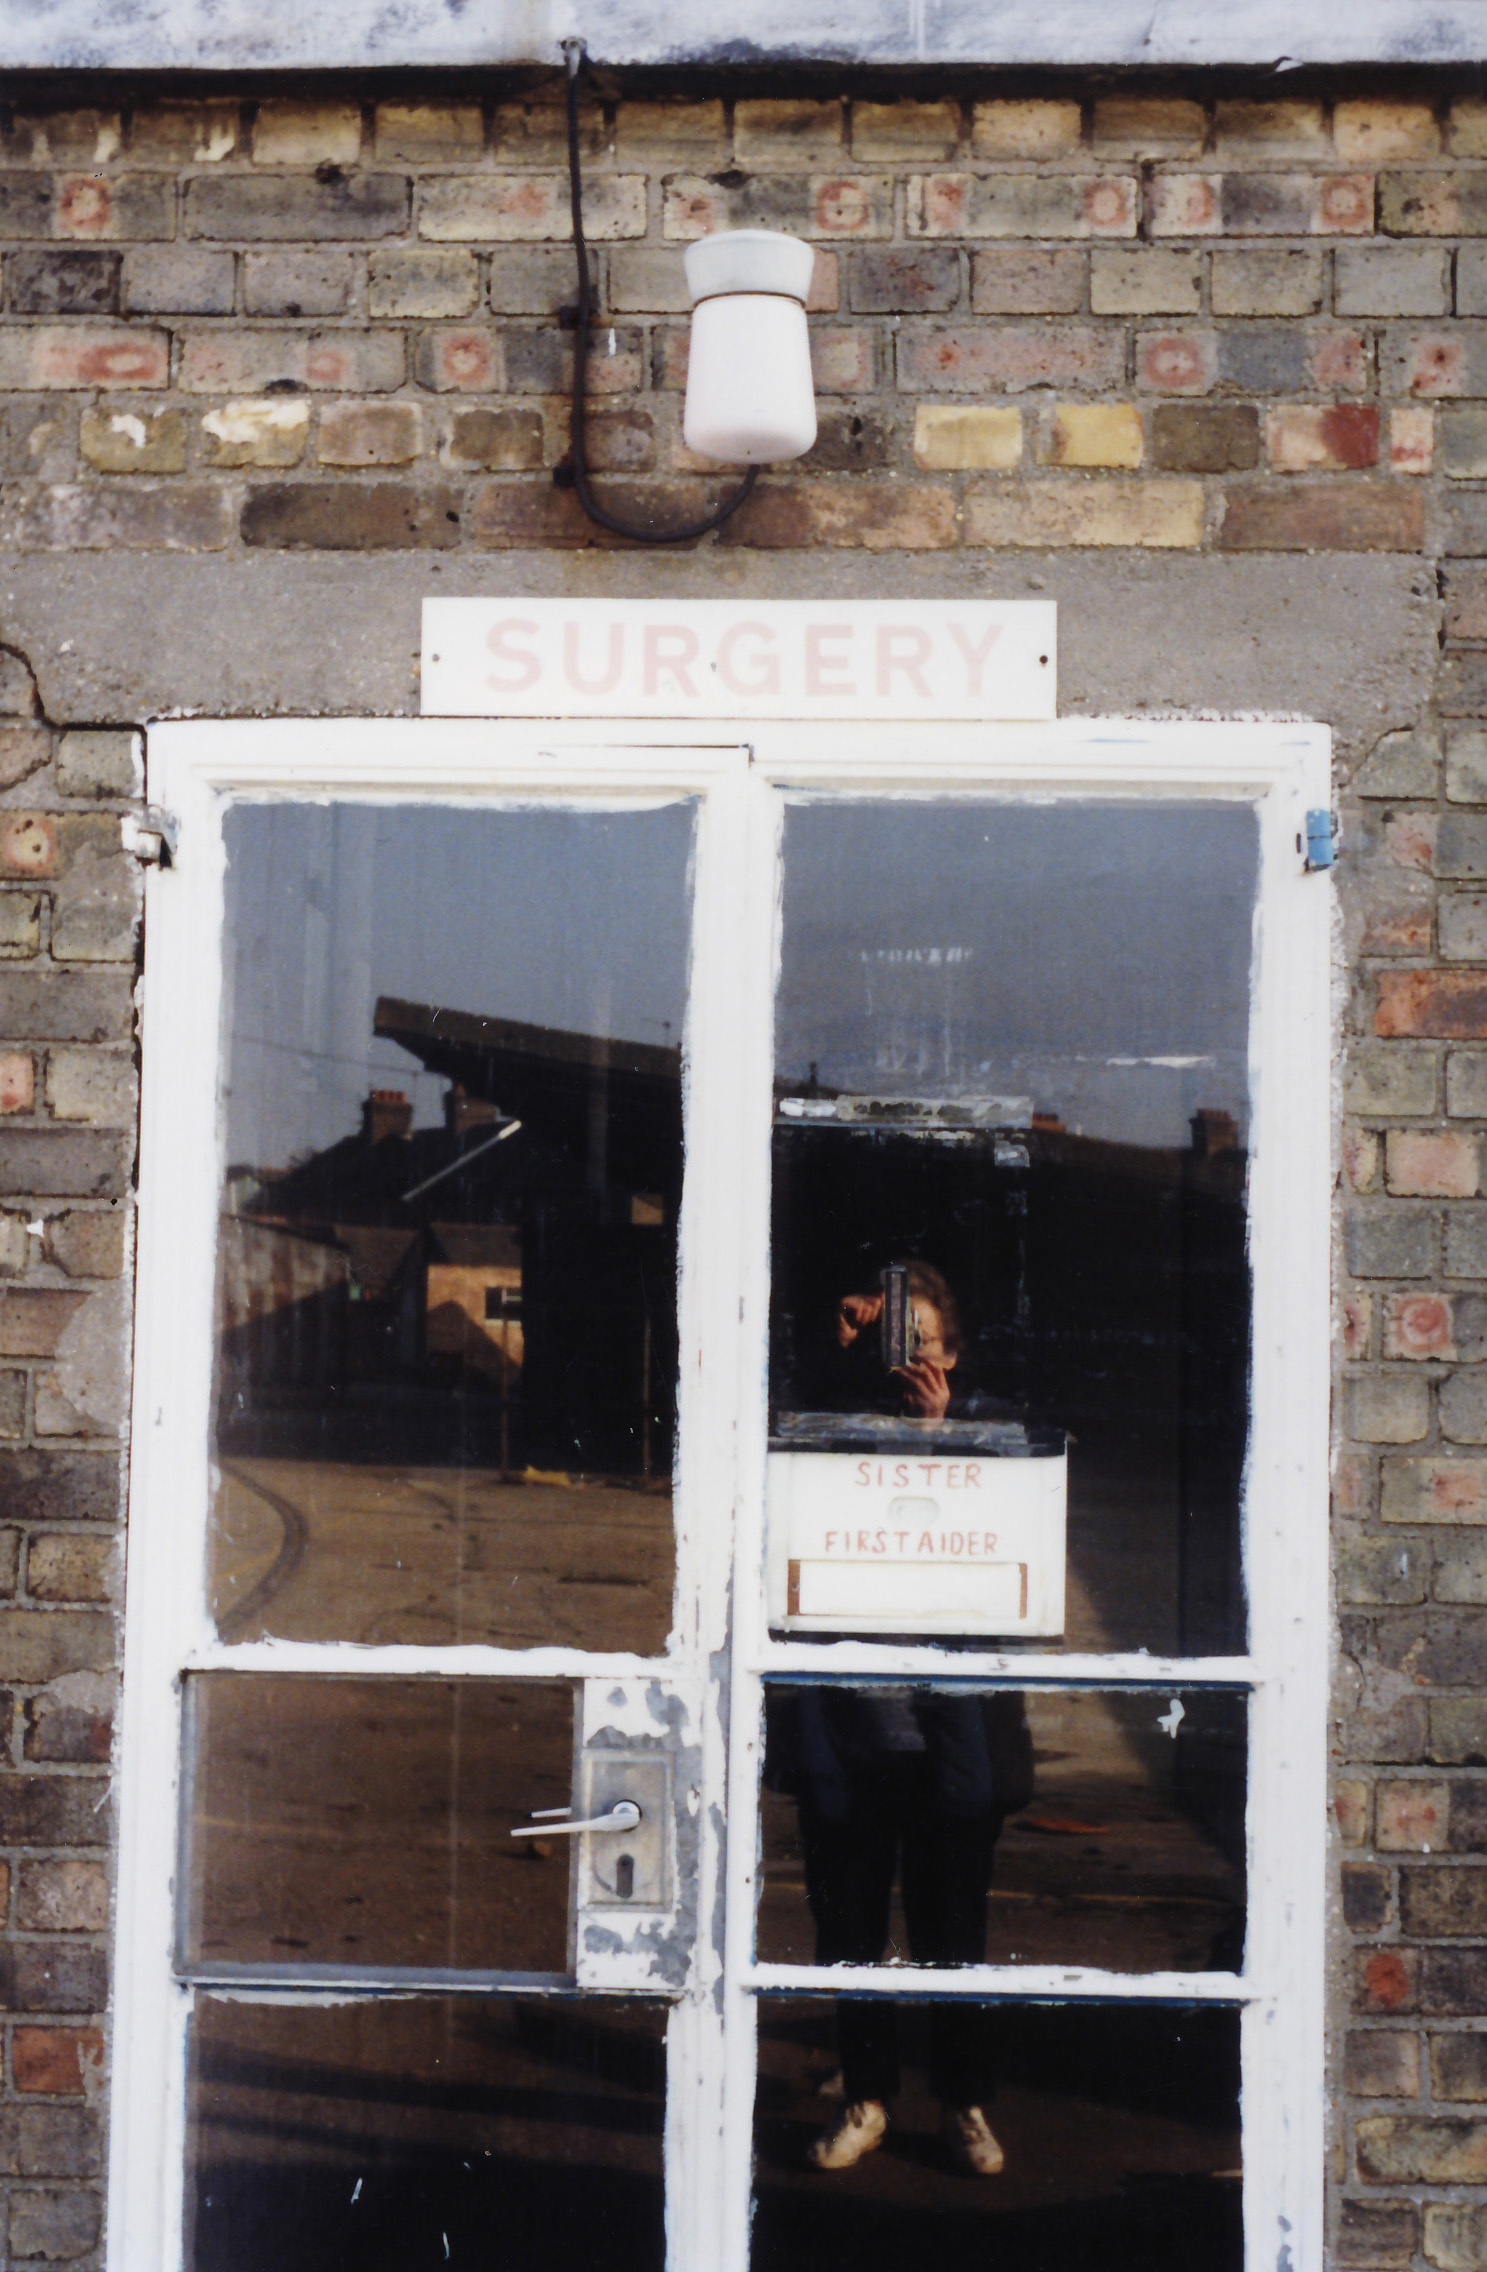 p-066-08-crittalls-surgery-doorway